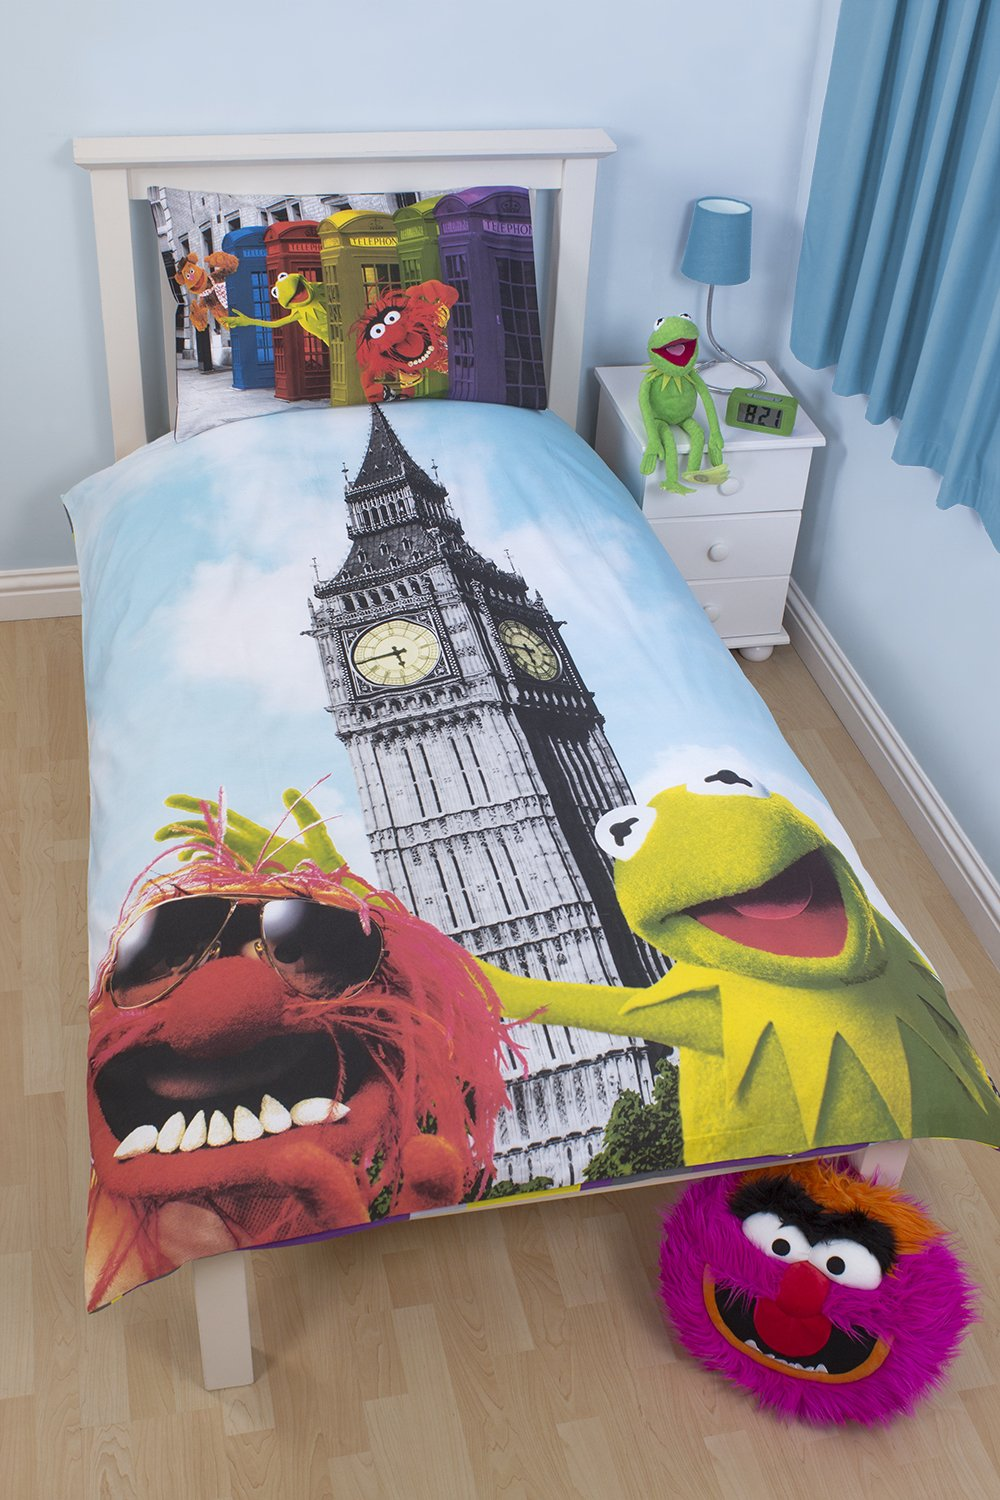 Beautiful frog bedroom decor ideas for frog lovers for Frog bedroom ideas